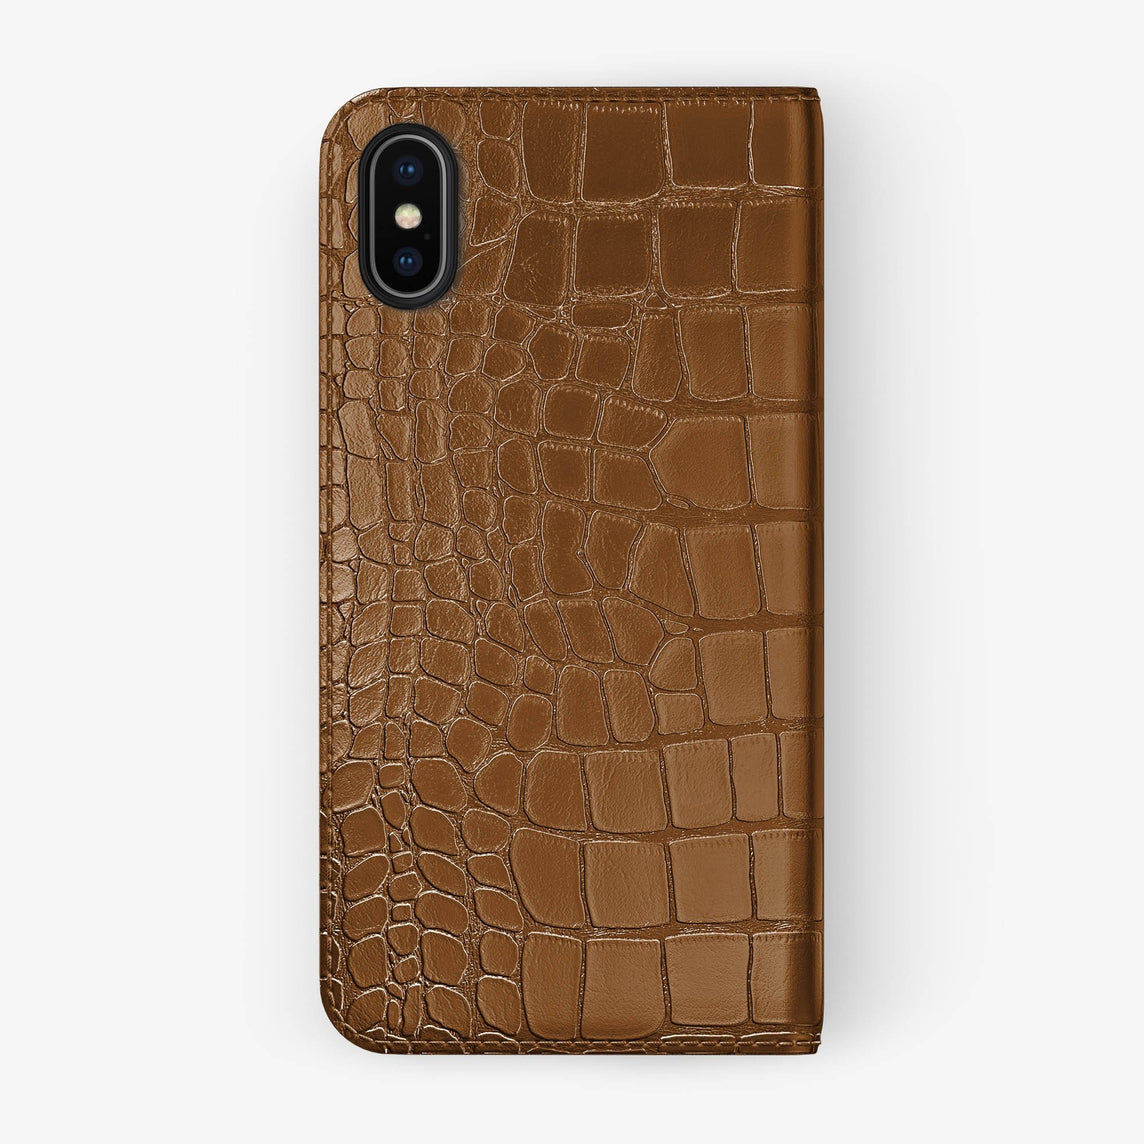 Cognac Alligator iPhone Folio Case for iPhone X finishing black - Hadoro Luxury Cases